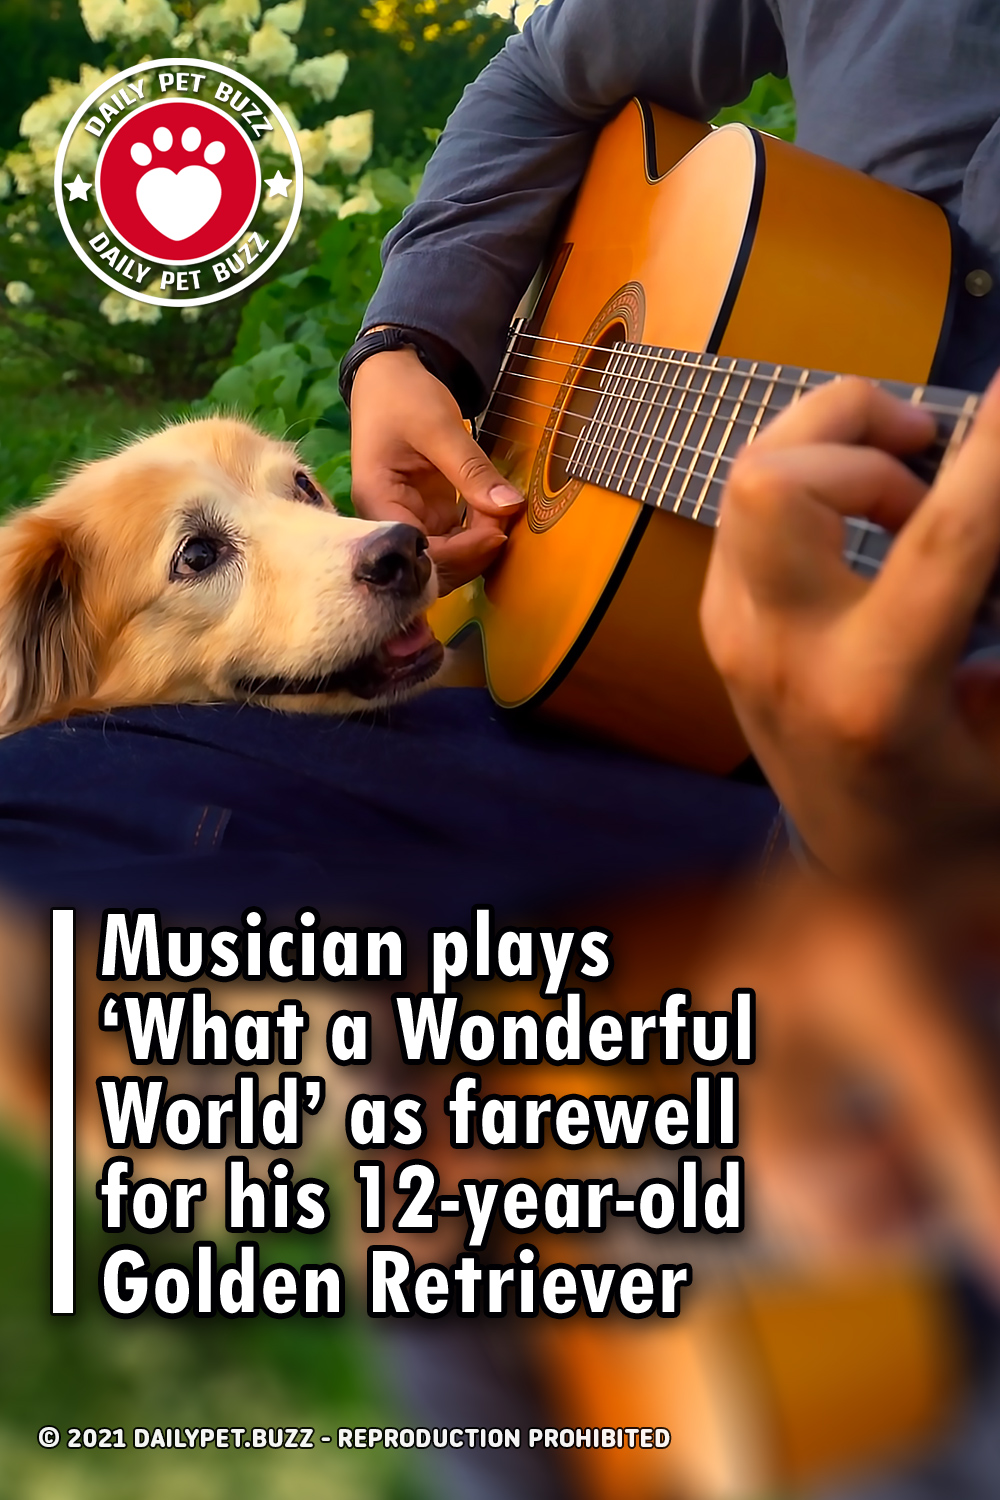 Musician plays 'What a Wonderful World' as farewell for his 12-year-old Golden Retriever